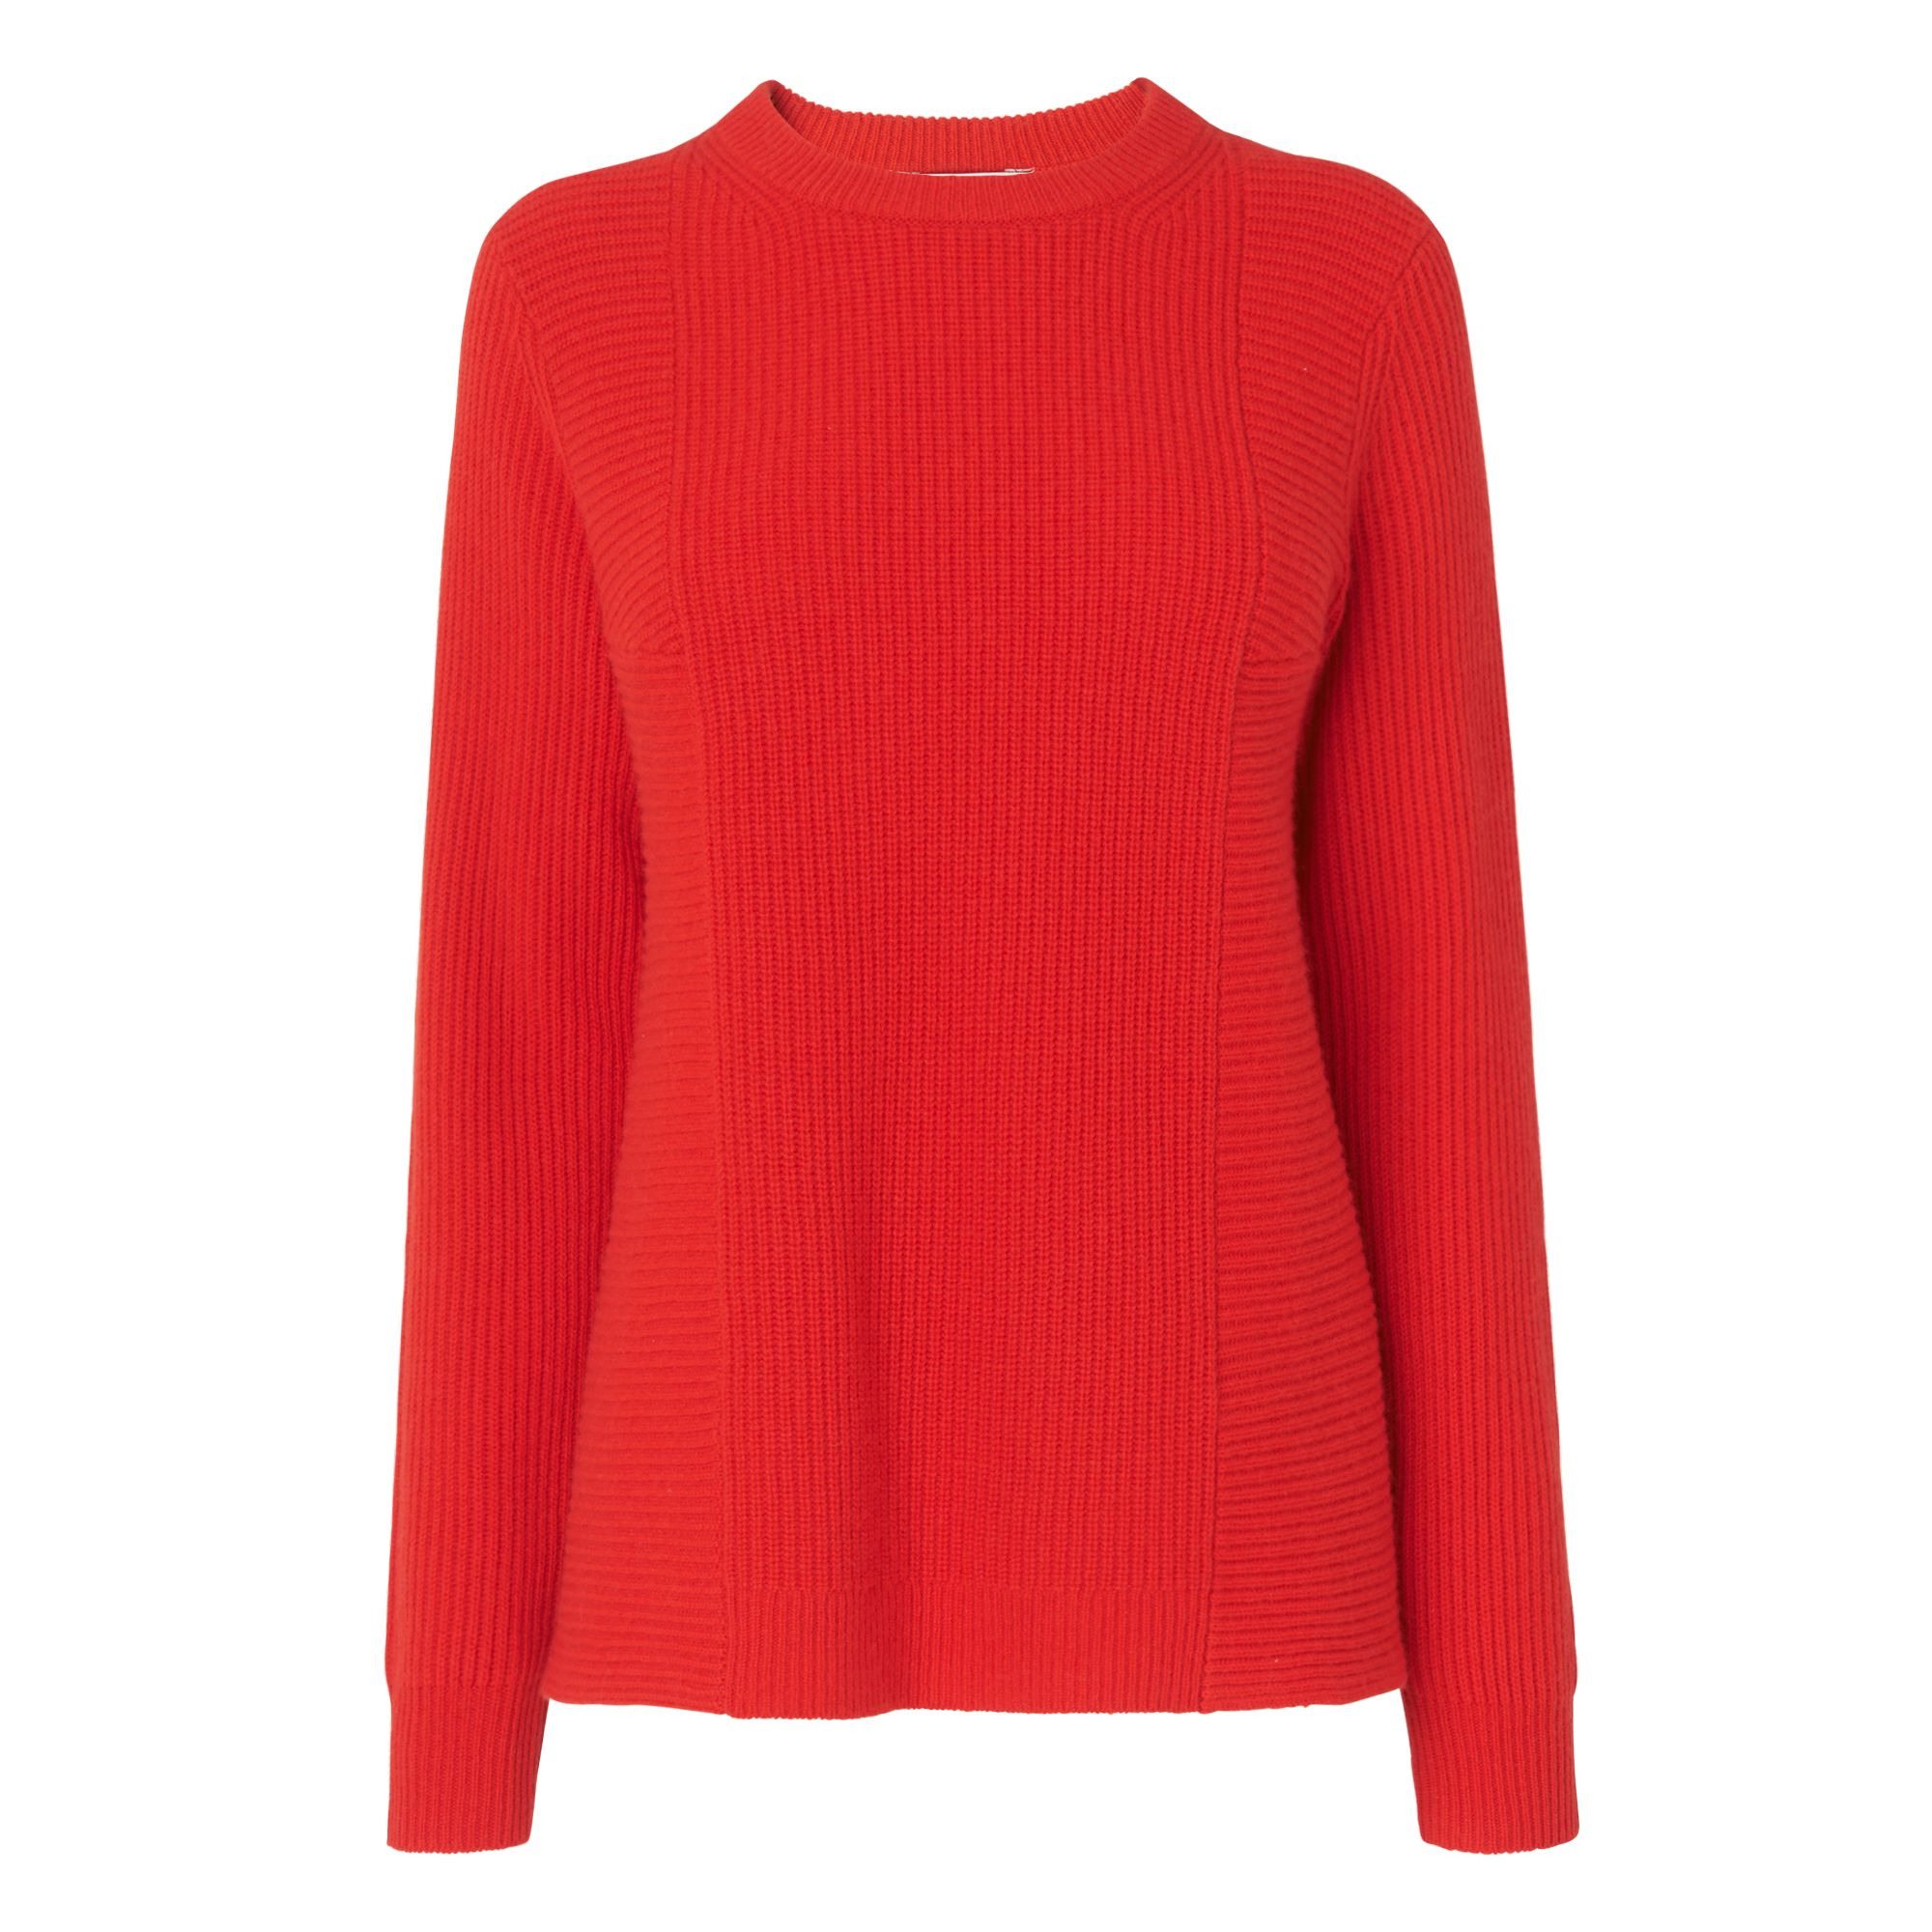 L.K.Bennett Alma Knitted Tops, Red